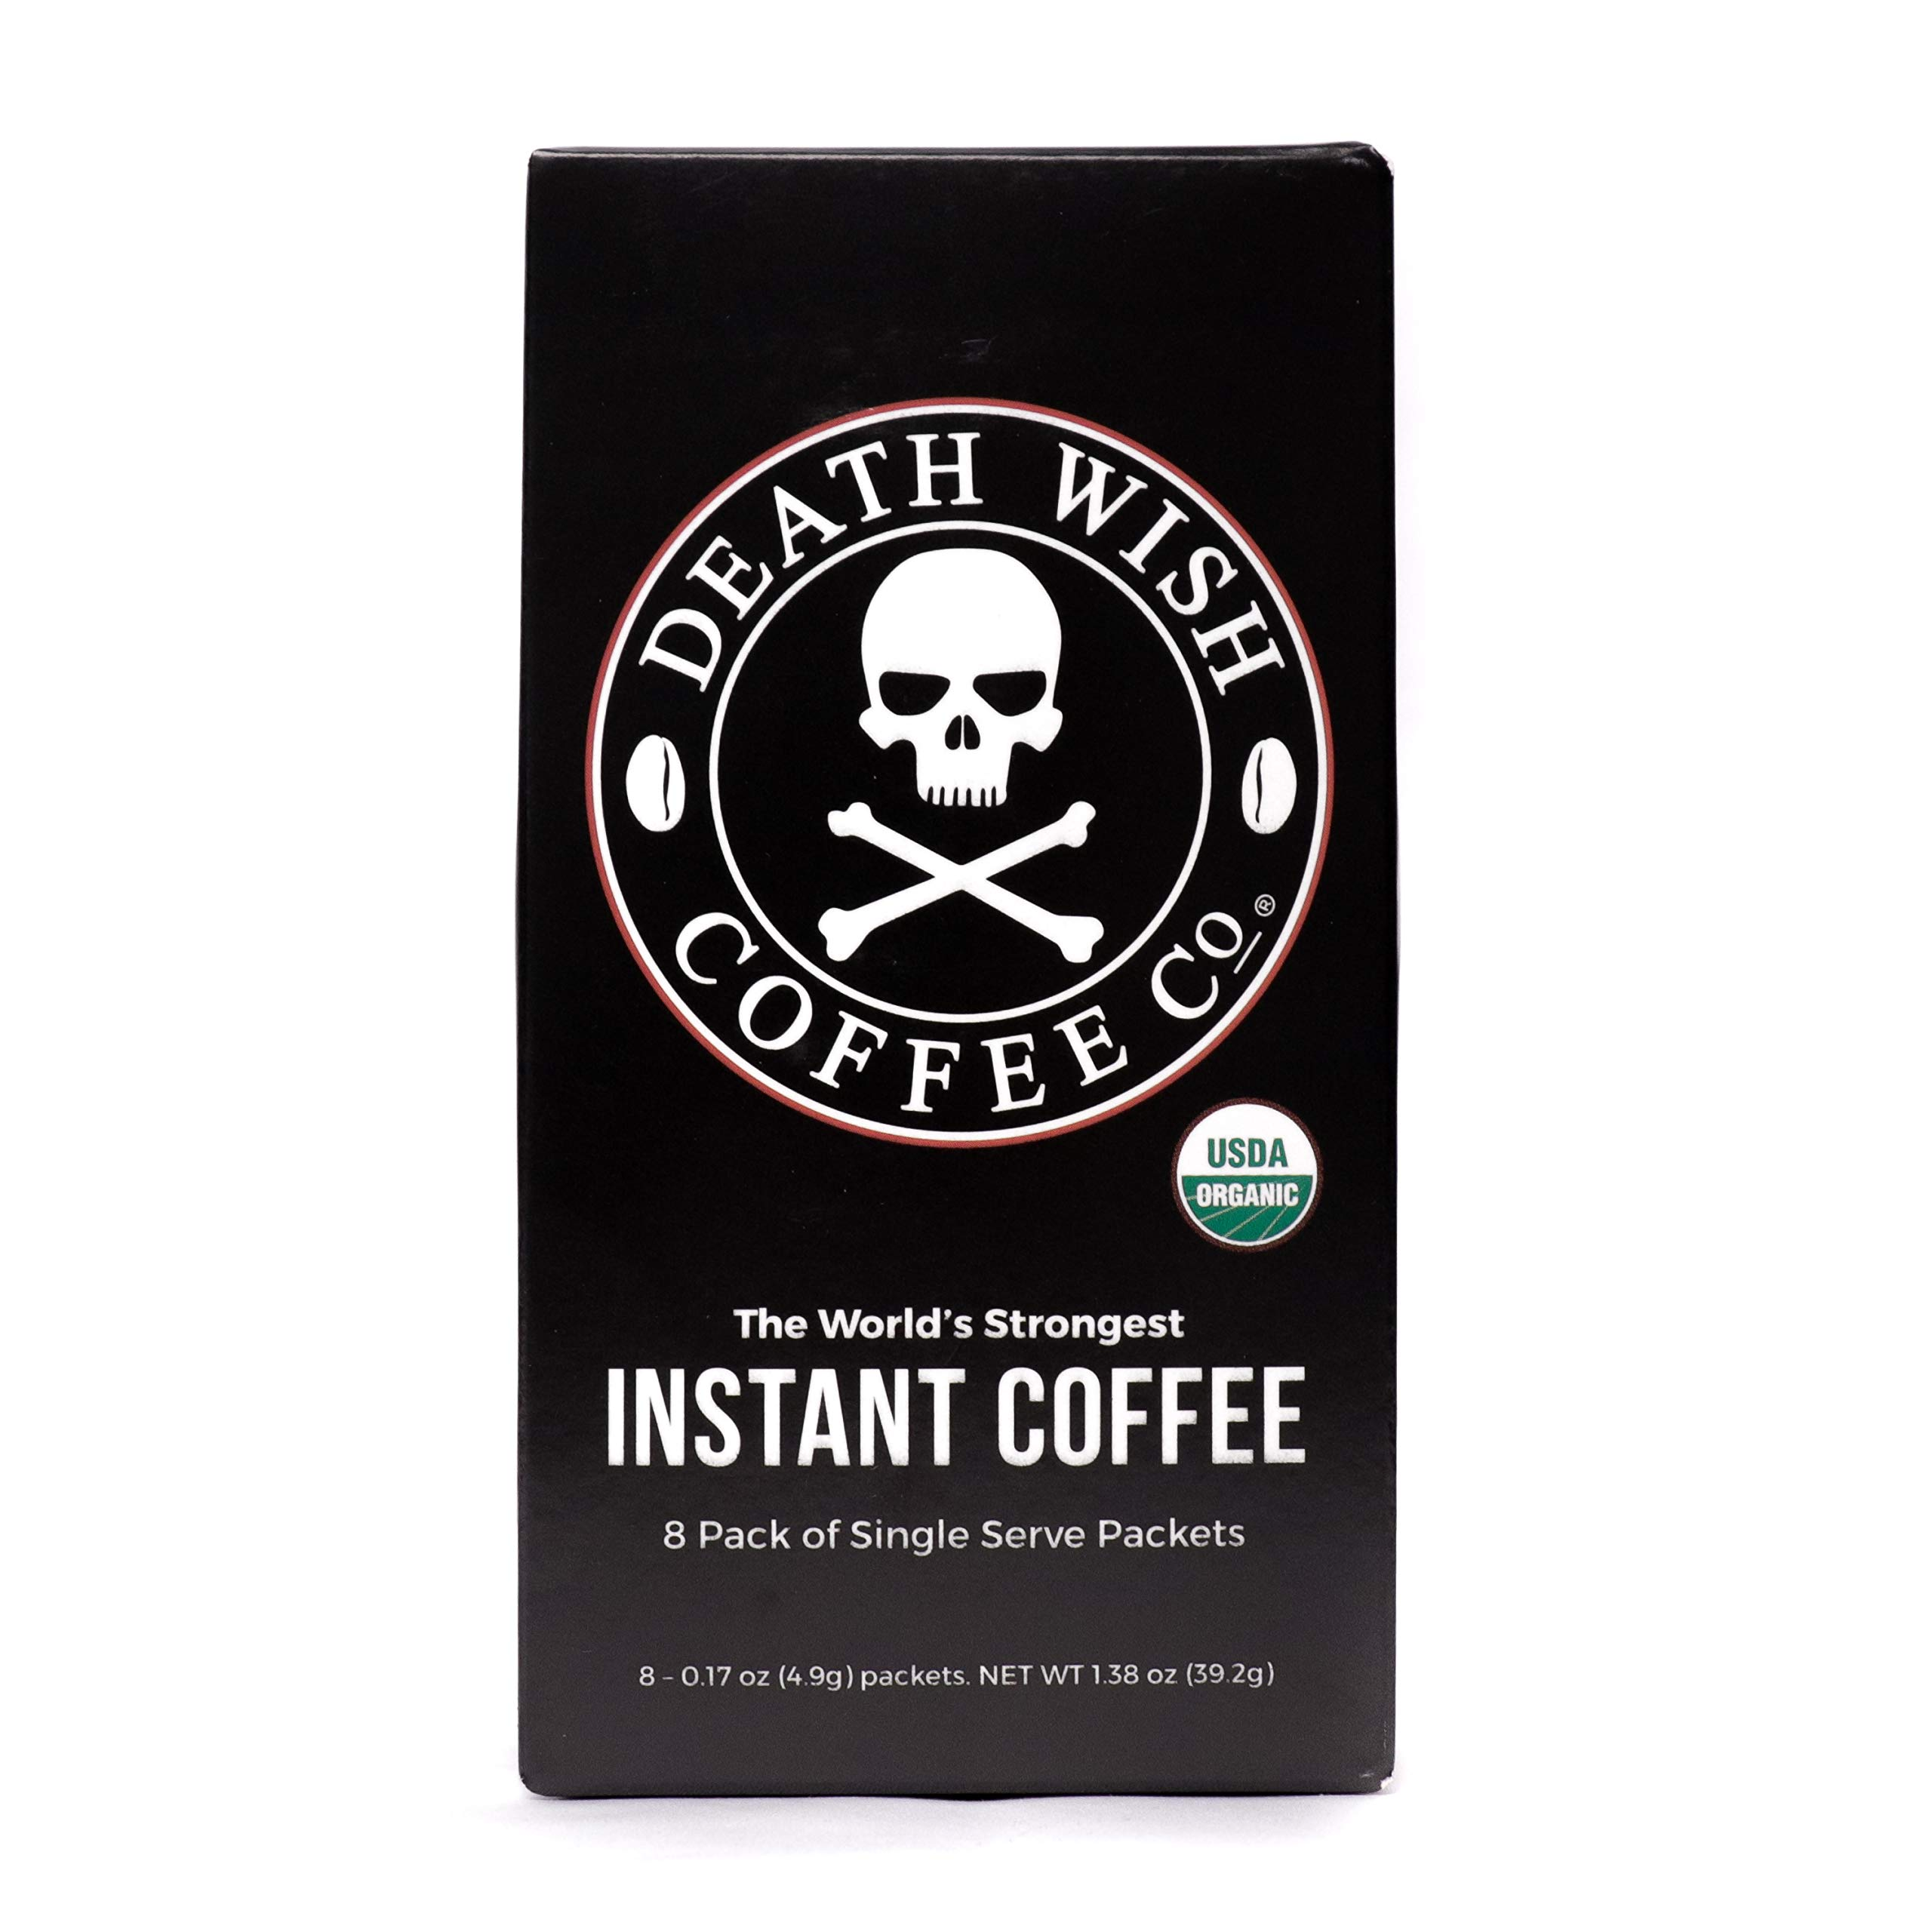 Death Wish Instant Coffee, The World's Strongest Coffee, Fair Trade and USDA Certified Organic, 8 Packets